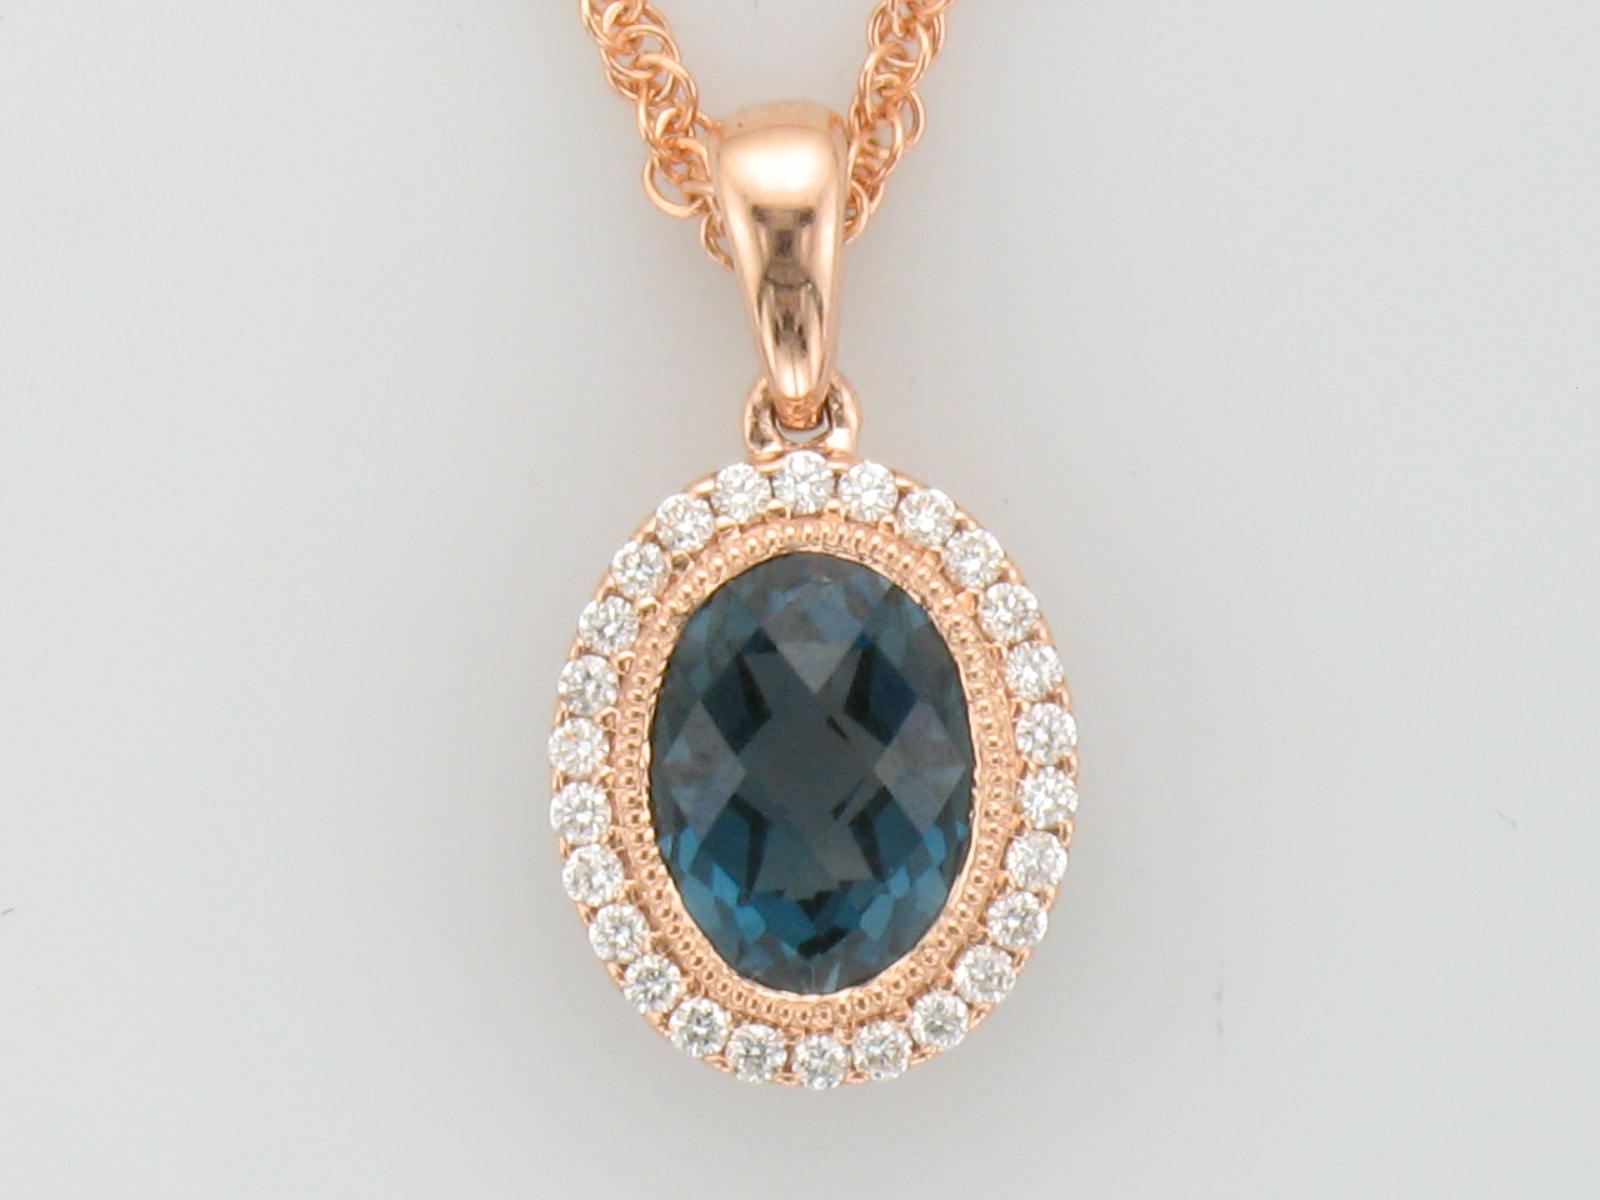 close view Rose gold Pendant with London Blue Topaz Oval with a Halo of Diamonds and Vintage Accent